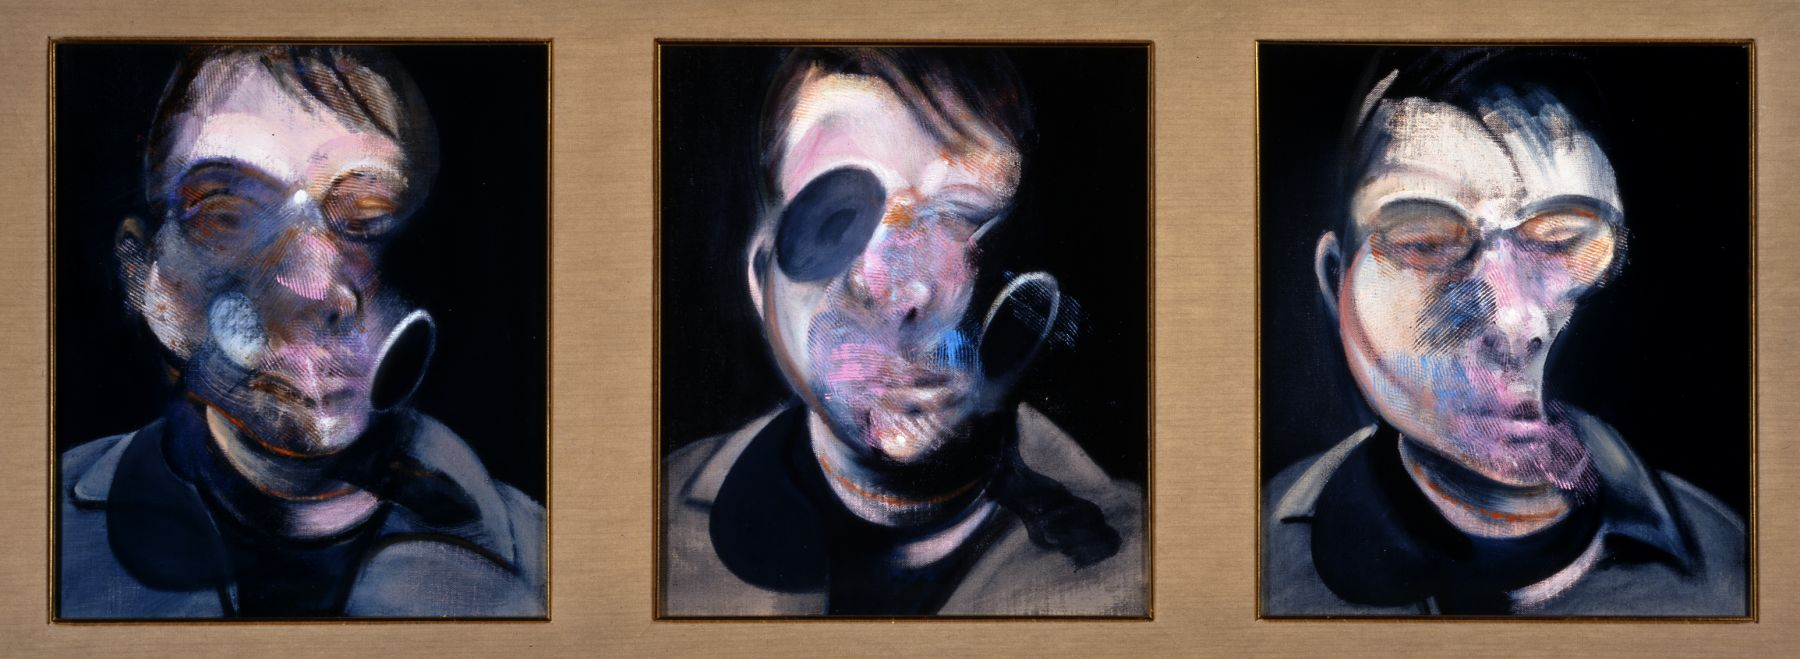 francis bacon three studies for self-portrait oil on canvas